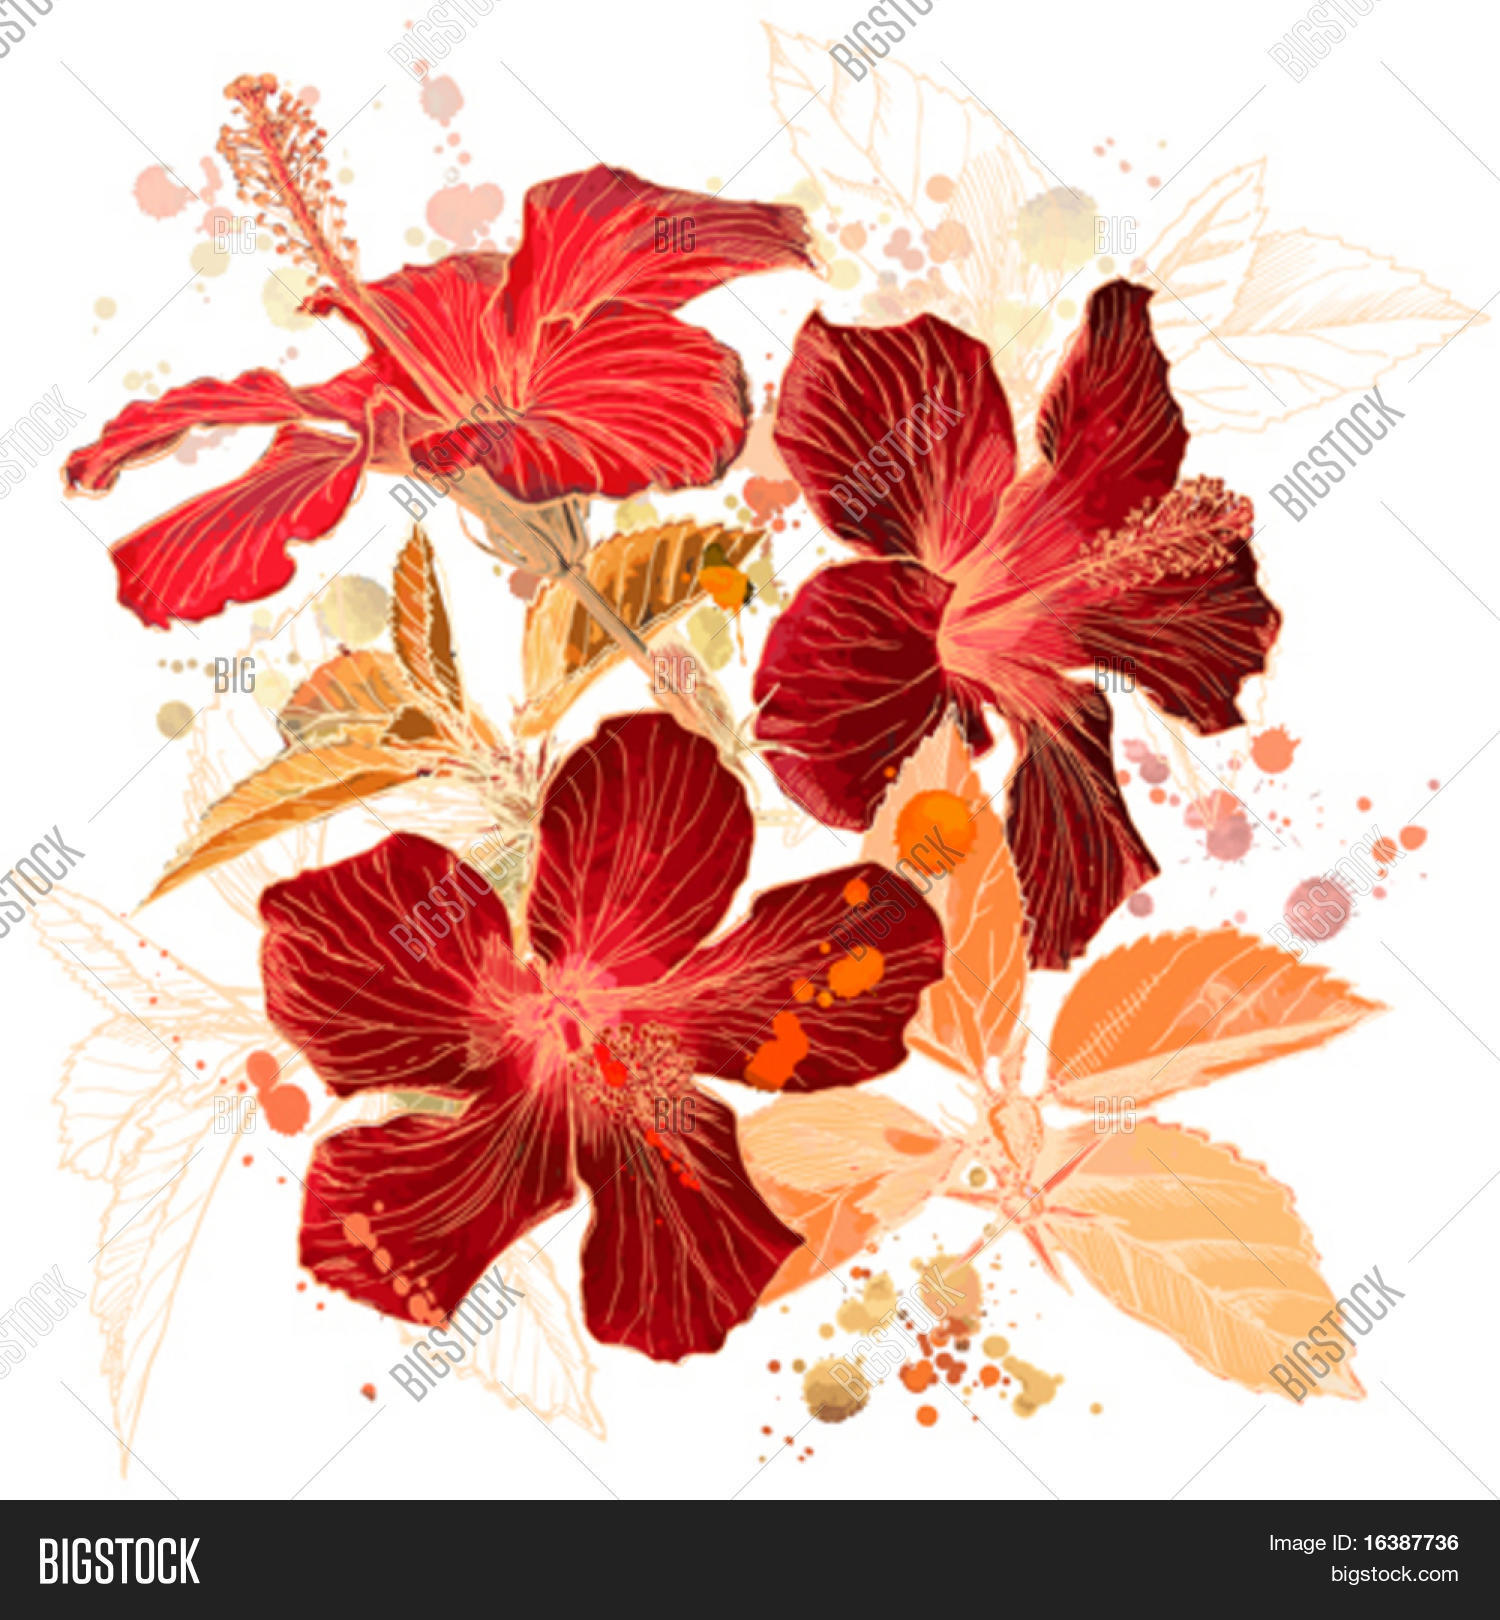 Hibiscus flower vector photo free trial bigstock hibiscus flower vector watercolor paint elements on separate layers izmirmasajfo